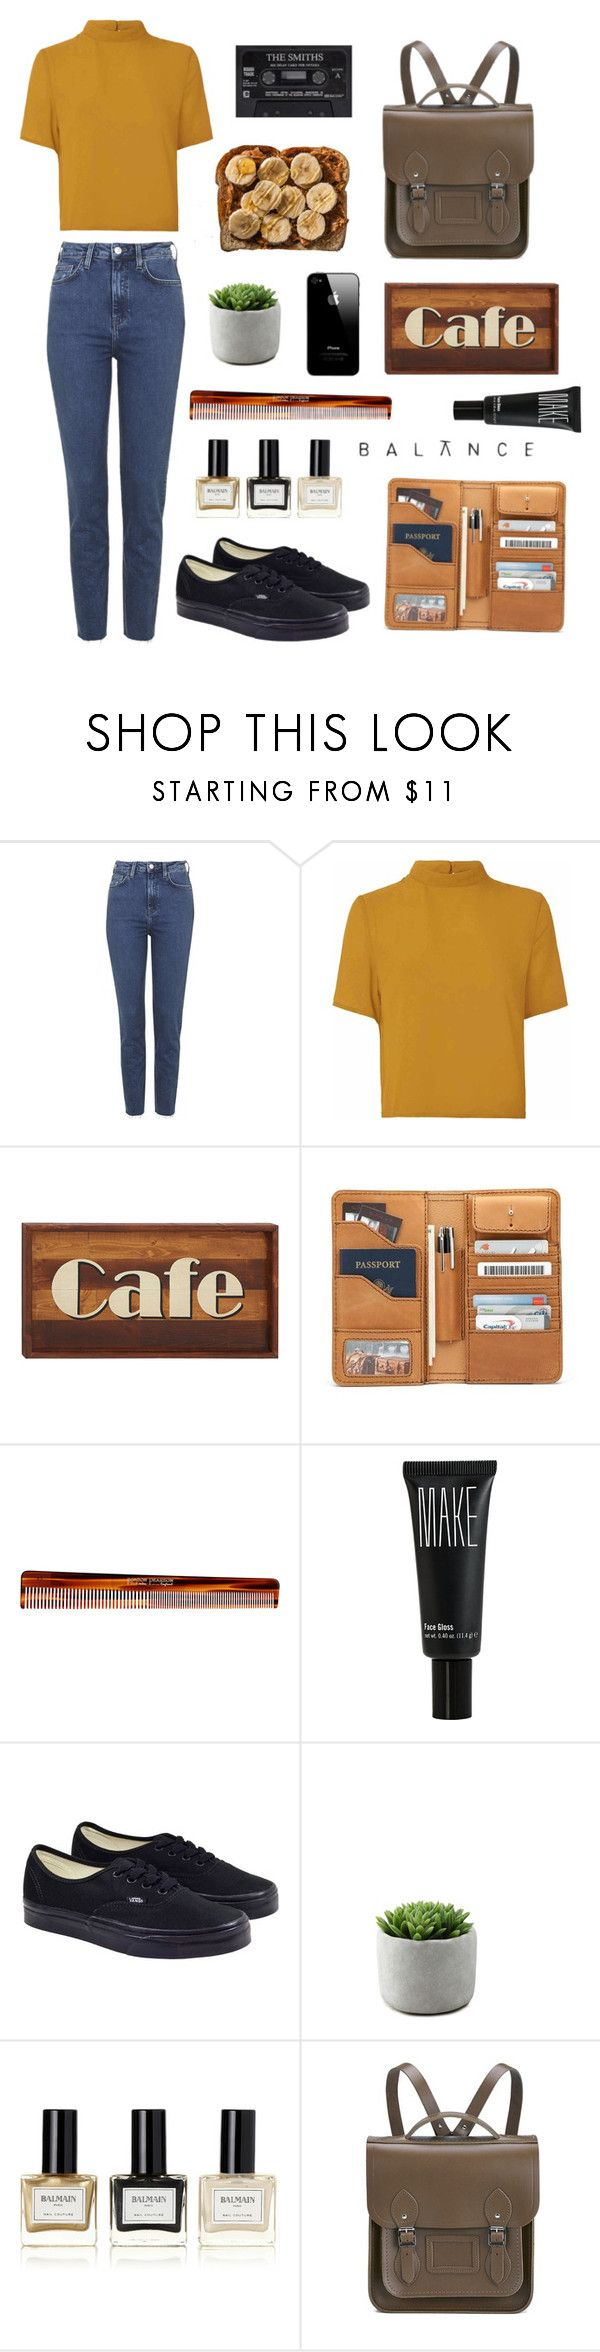 """""""🌼 People have the power! 🌼"""" by dorienooos ❤ liked on Polyvore featuring Topshop, Glamorous, Dot & Bo, Mason Pearson, Make, Vans, Balmain and The Cambridge Satchel Company"""